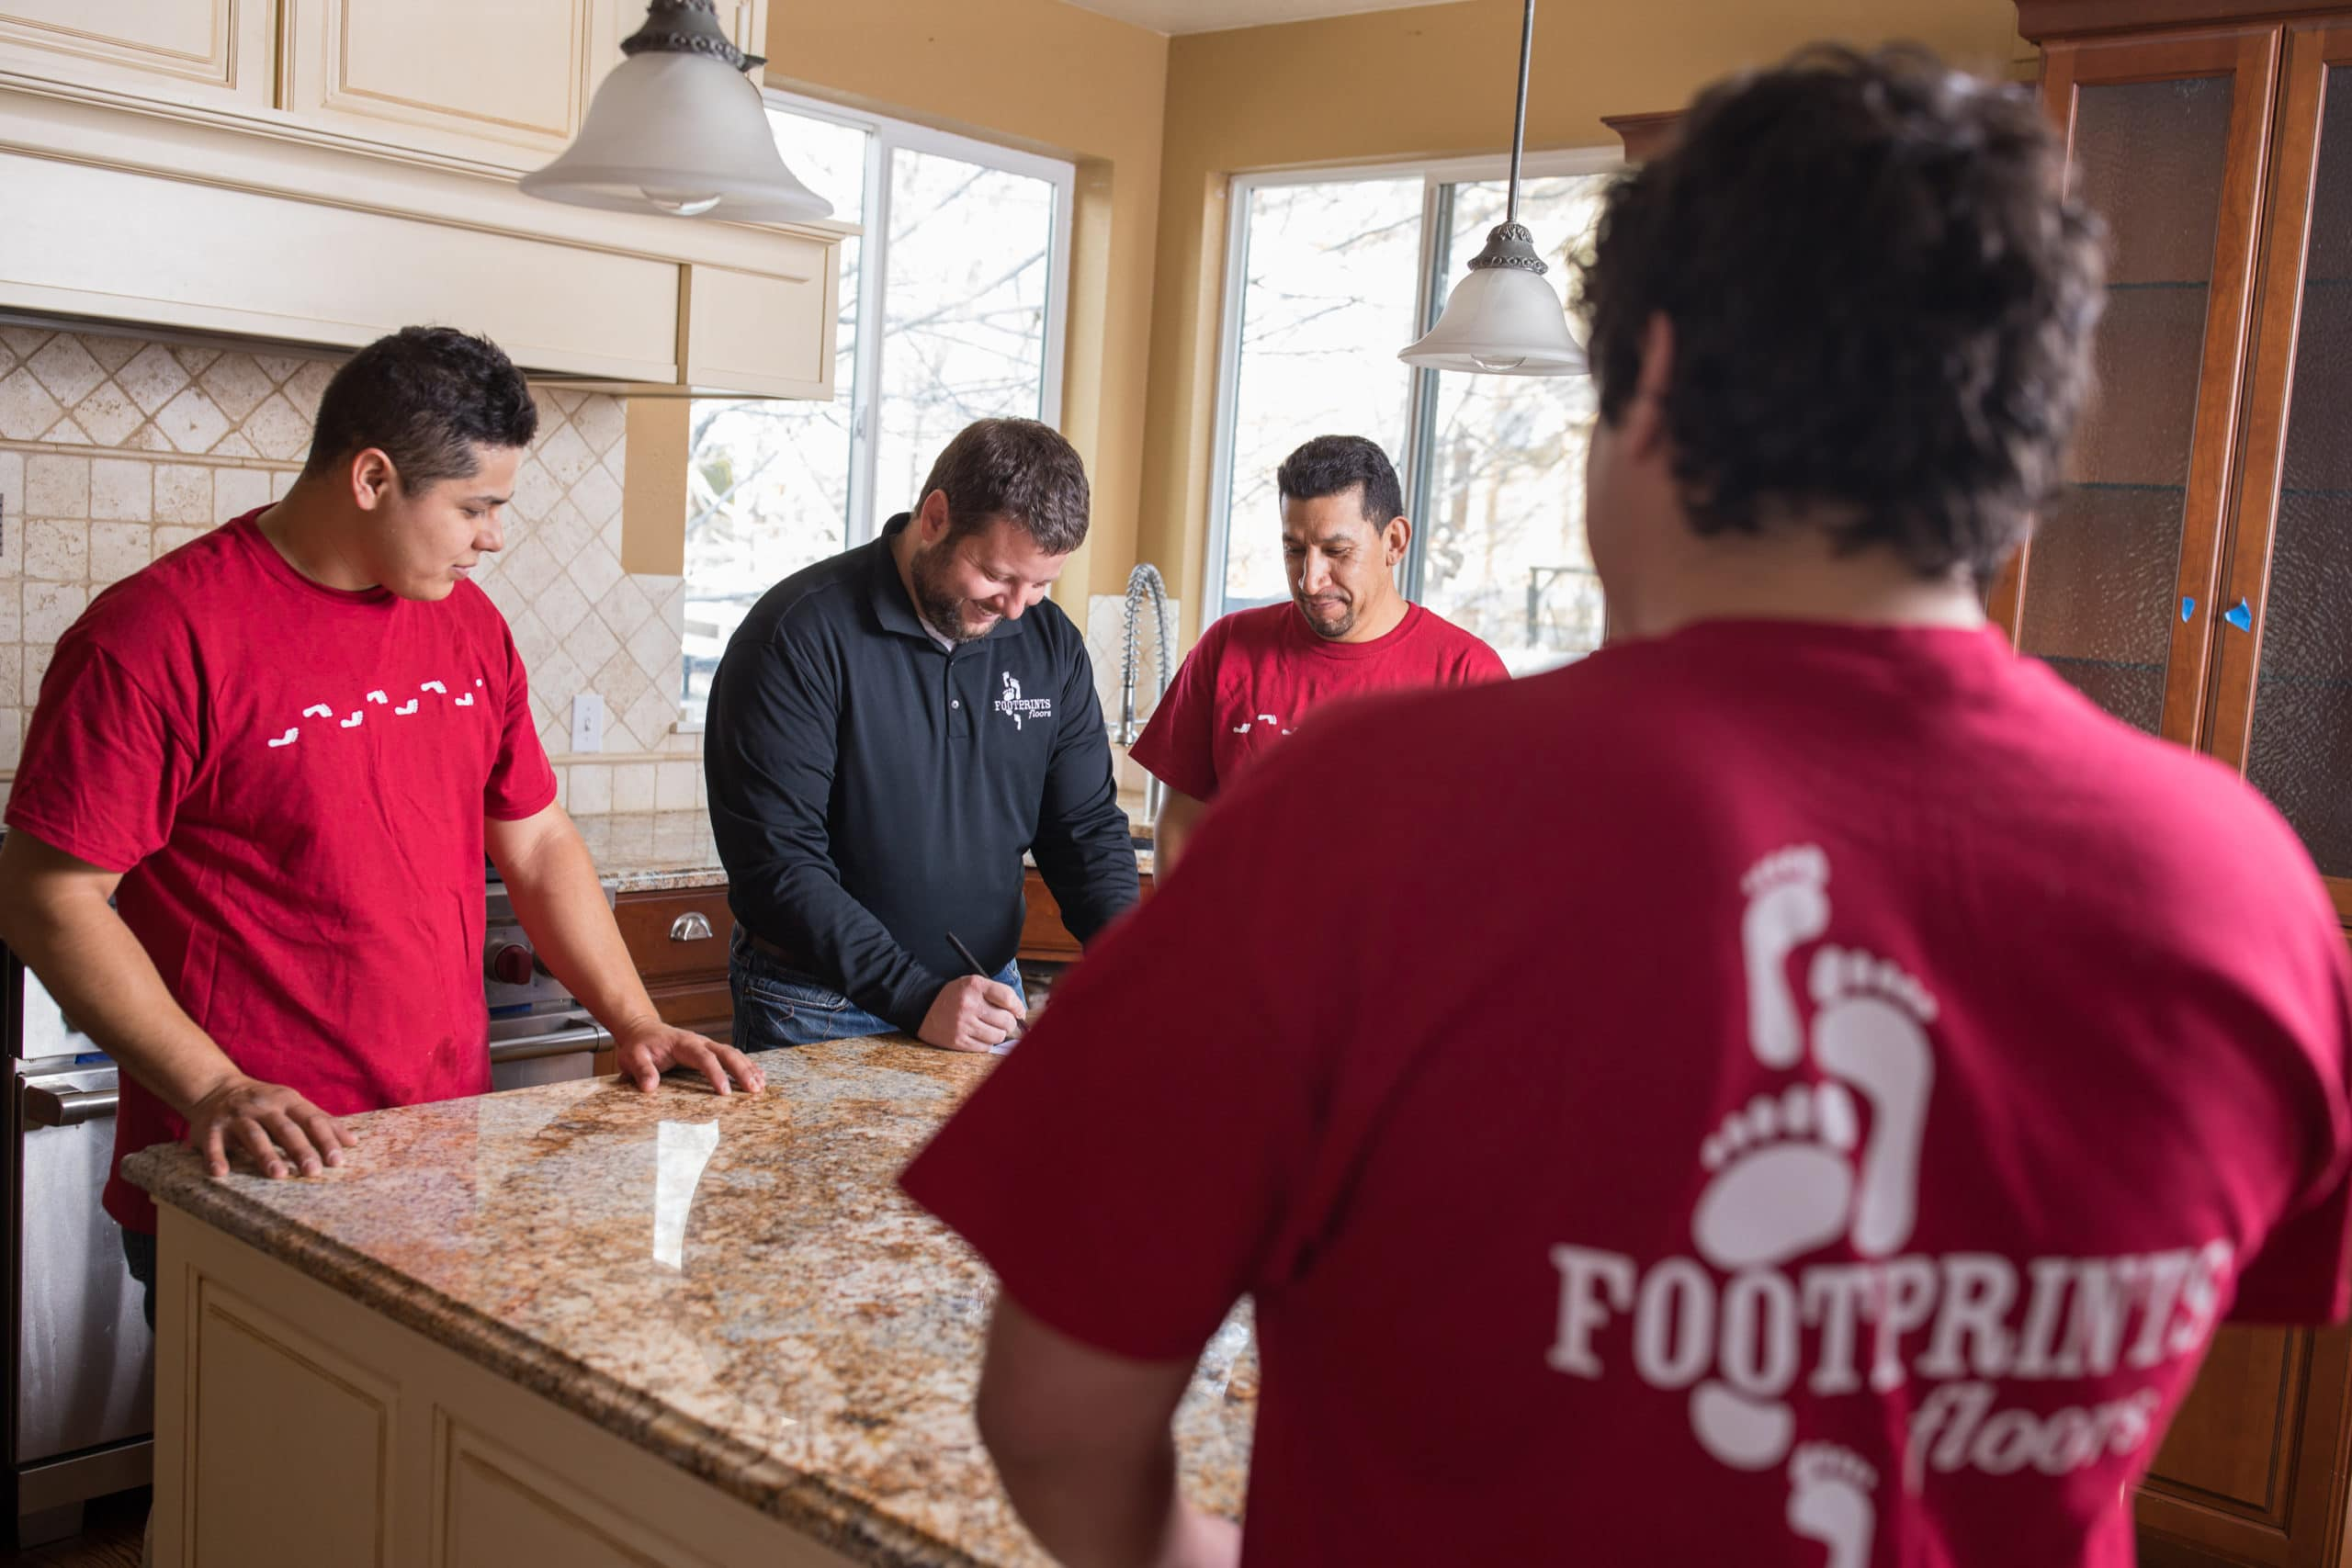 Constant support is a huge benefit of self employment with a Footprints Floors franchise.